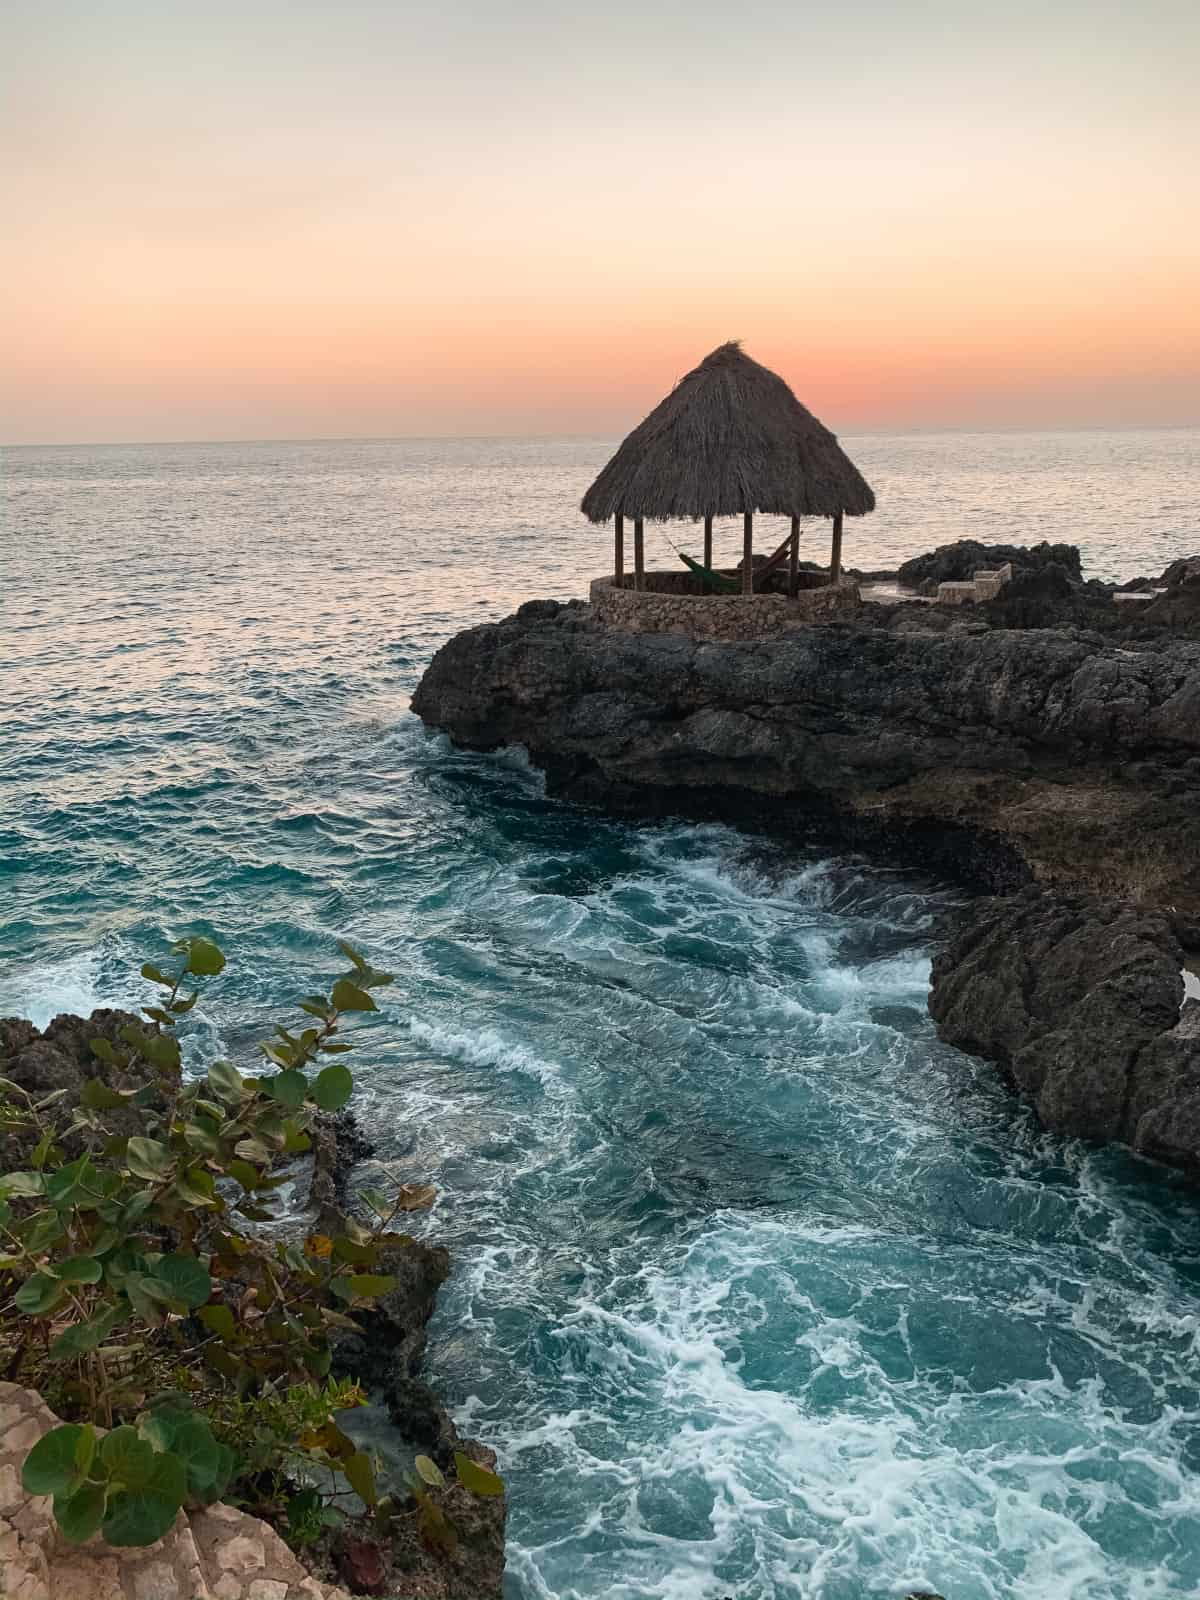 Hotel Review: Tensing Pen in Negril, Jamaica | What to expect staying at this boutique resort in Negril's West End. Perched on gorgeous cliffs, this hotel consistently makes Travel+Leisure's top hotels in the world list | One Girl, Whole World